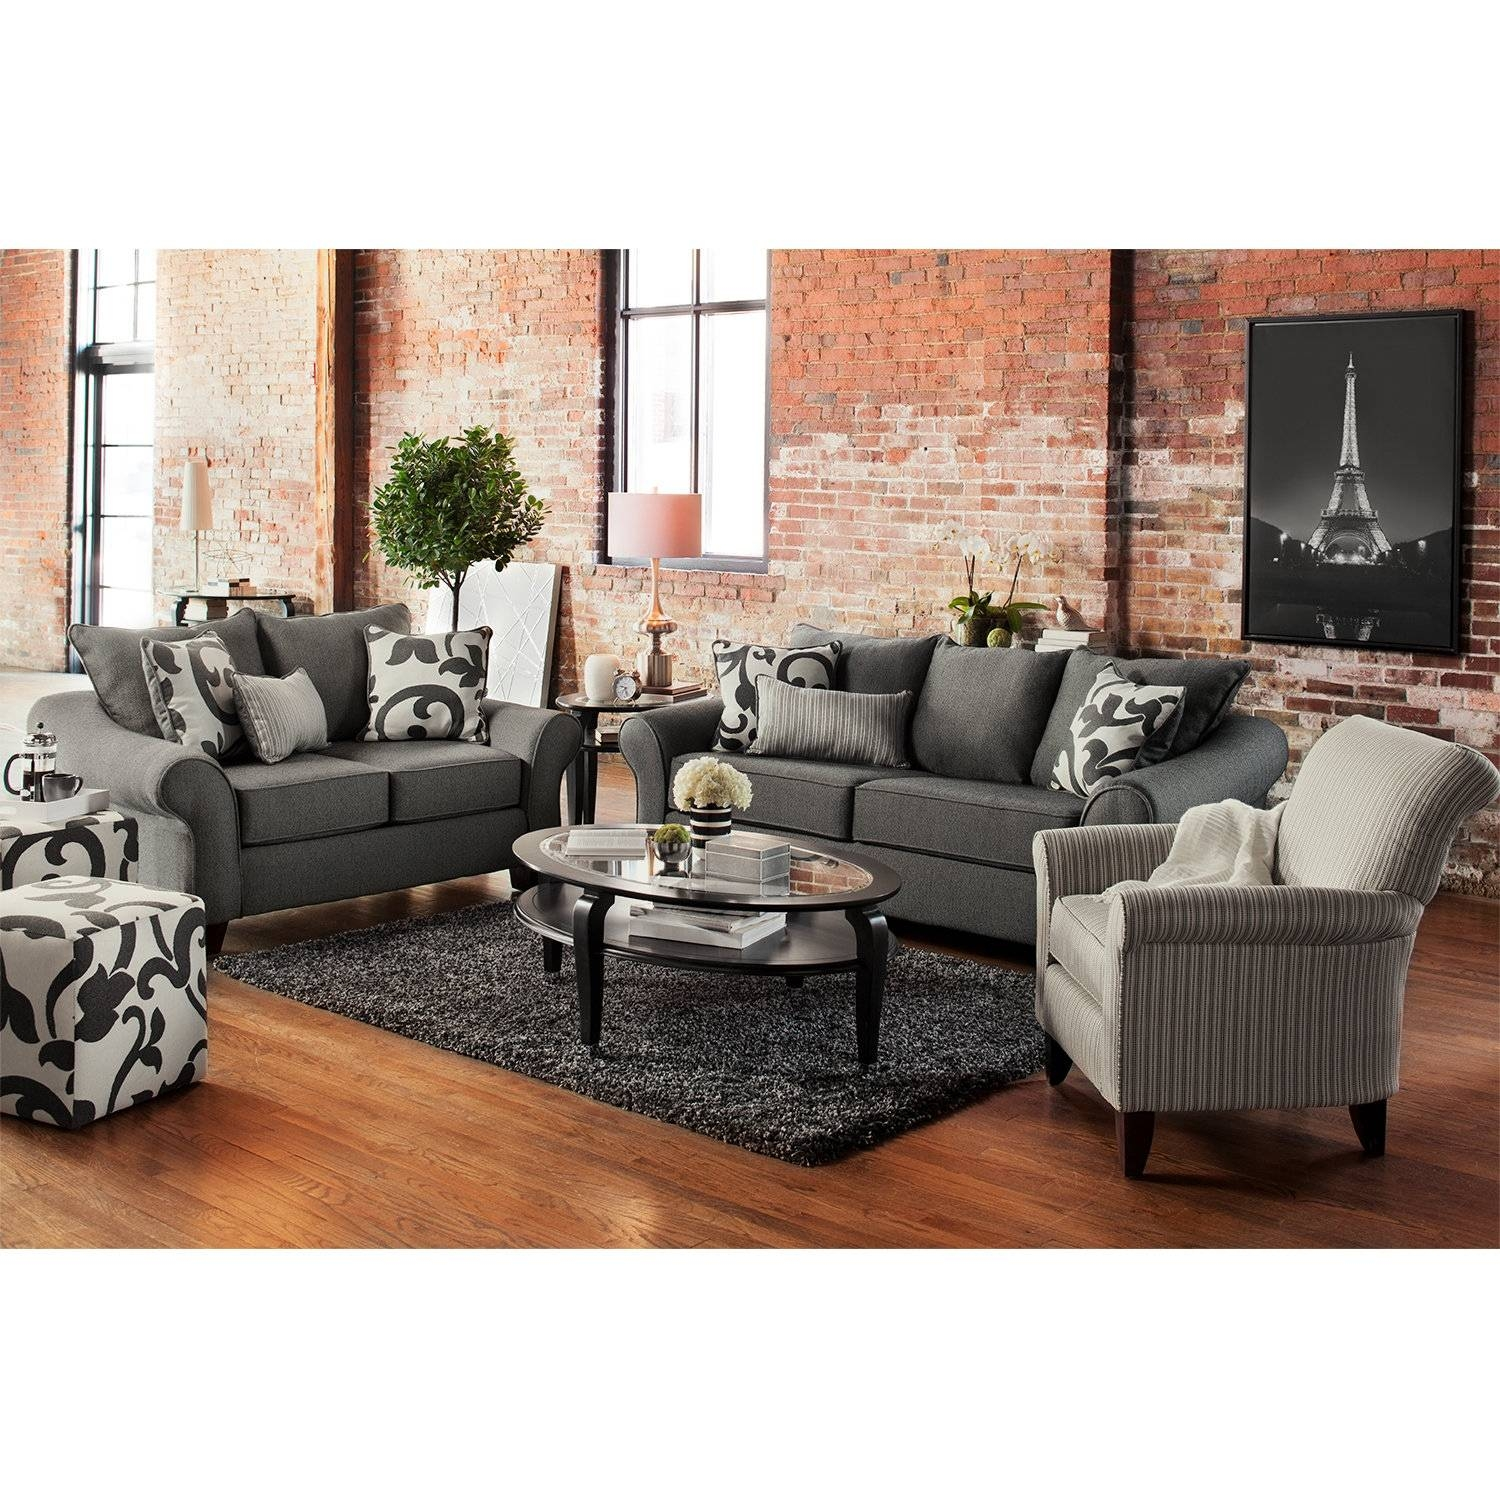 Colette Sofa, Loveseat And Accent Chair Set - Gray | American with regard to Sofa Loveseat And Chair Set (Image 11 of 30)